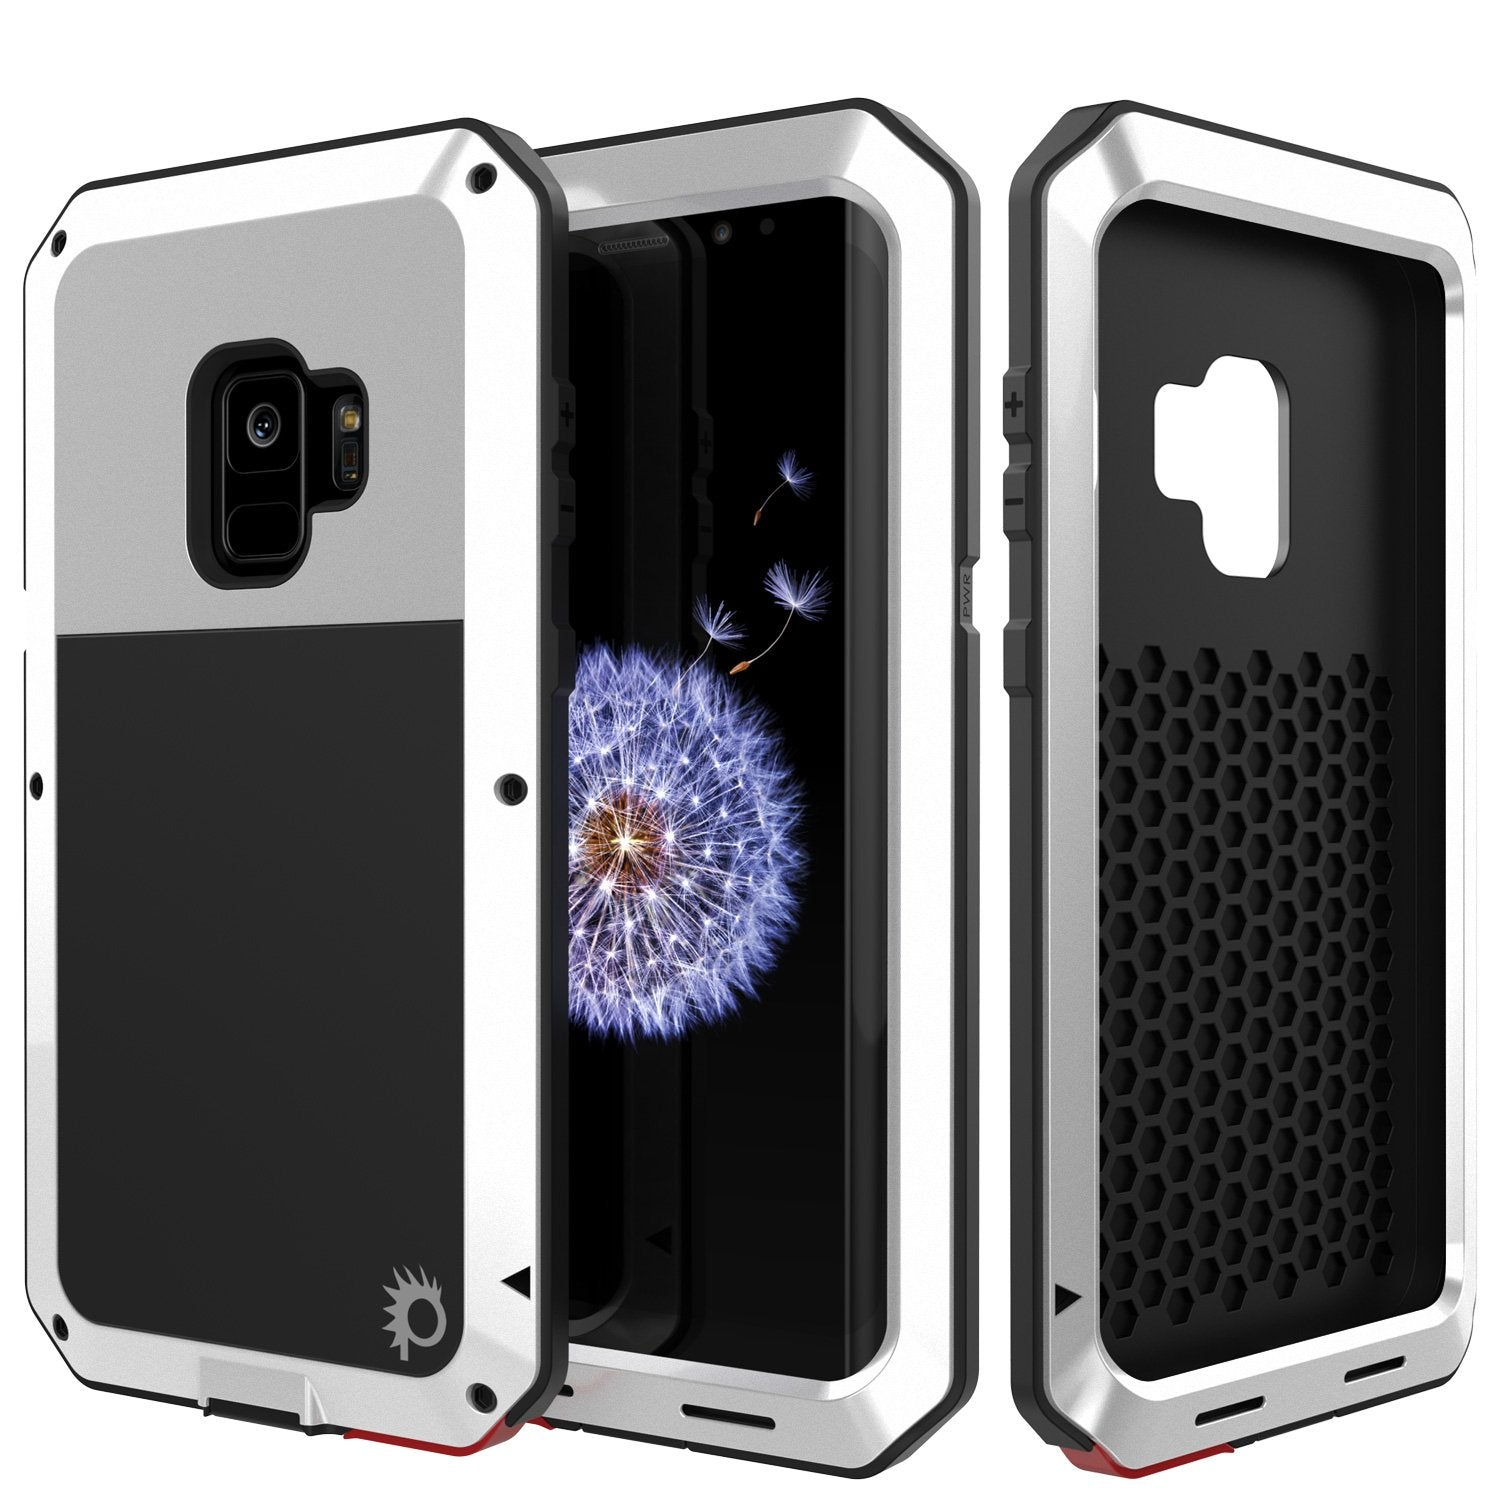 Galaxy S9 Metal Case, Heavy Duty Military Grade Rugged case [White]